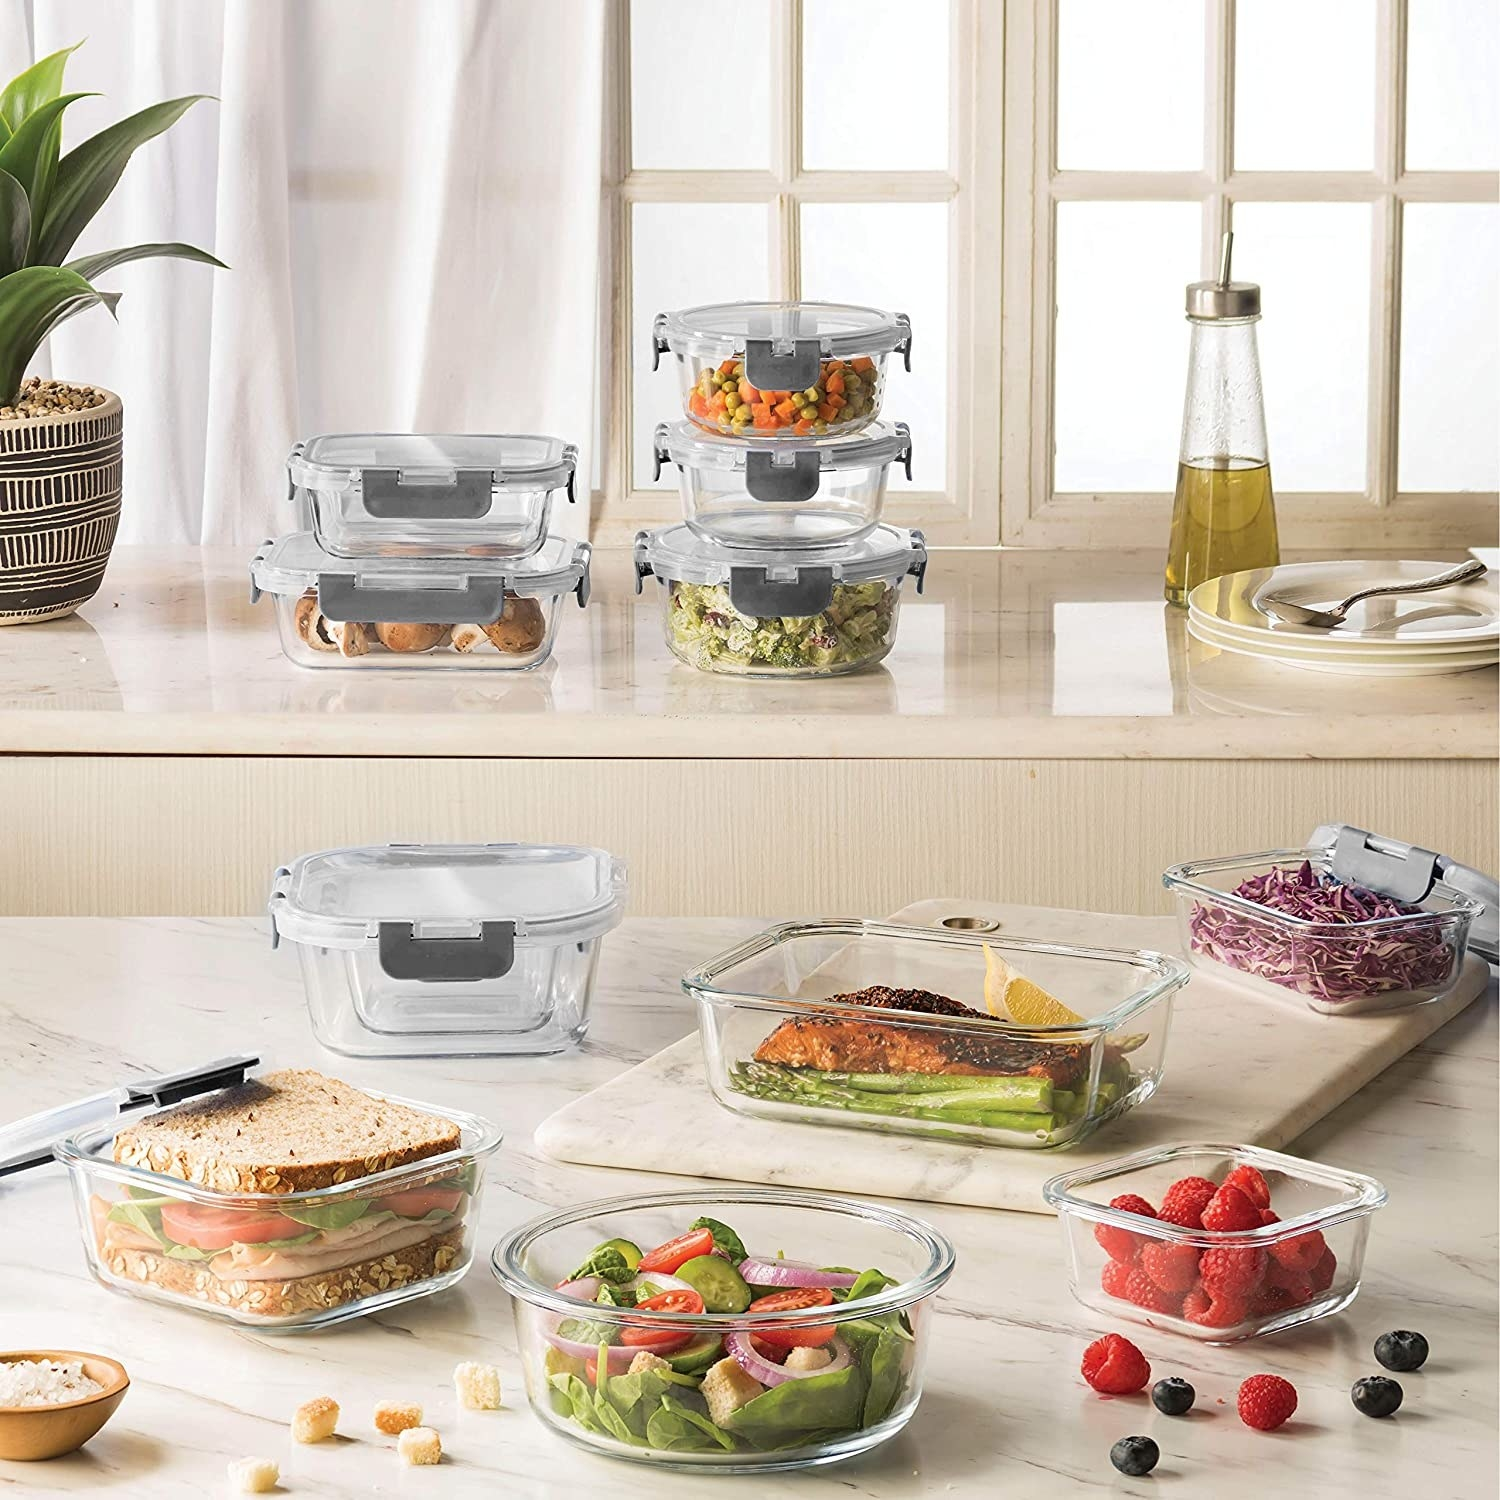 The tupperware in a kitchen filled with various foods